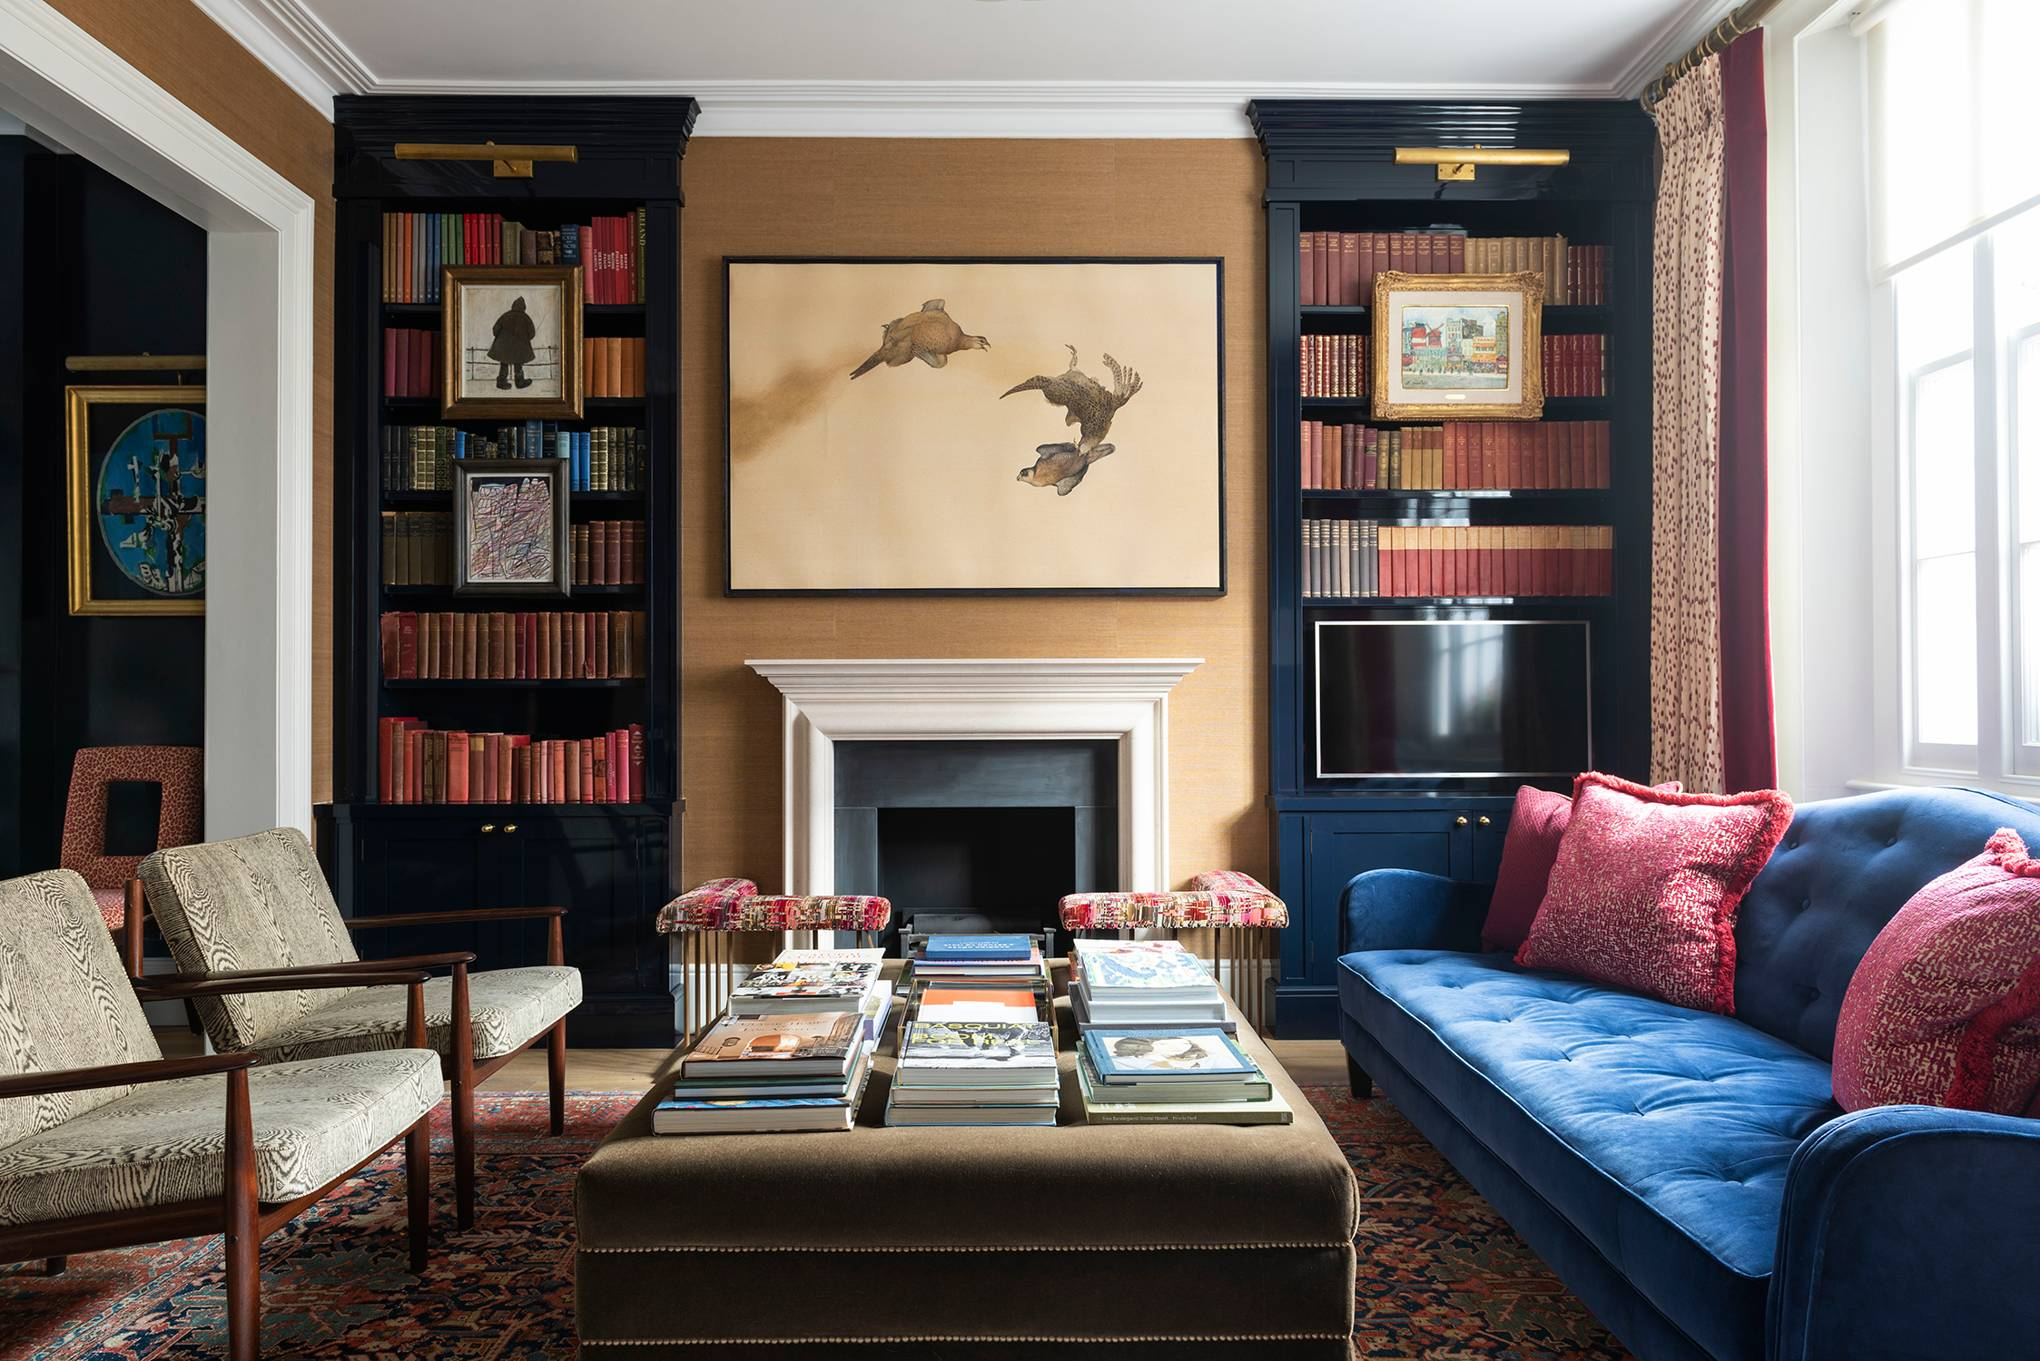 Images of decorated room are not the Downing Street refurbishment